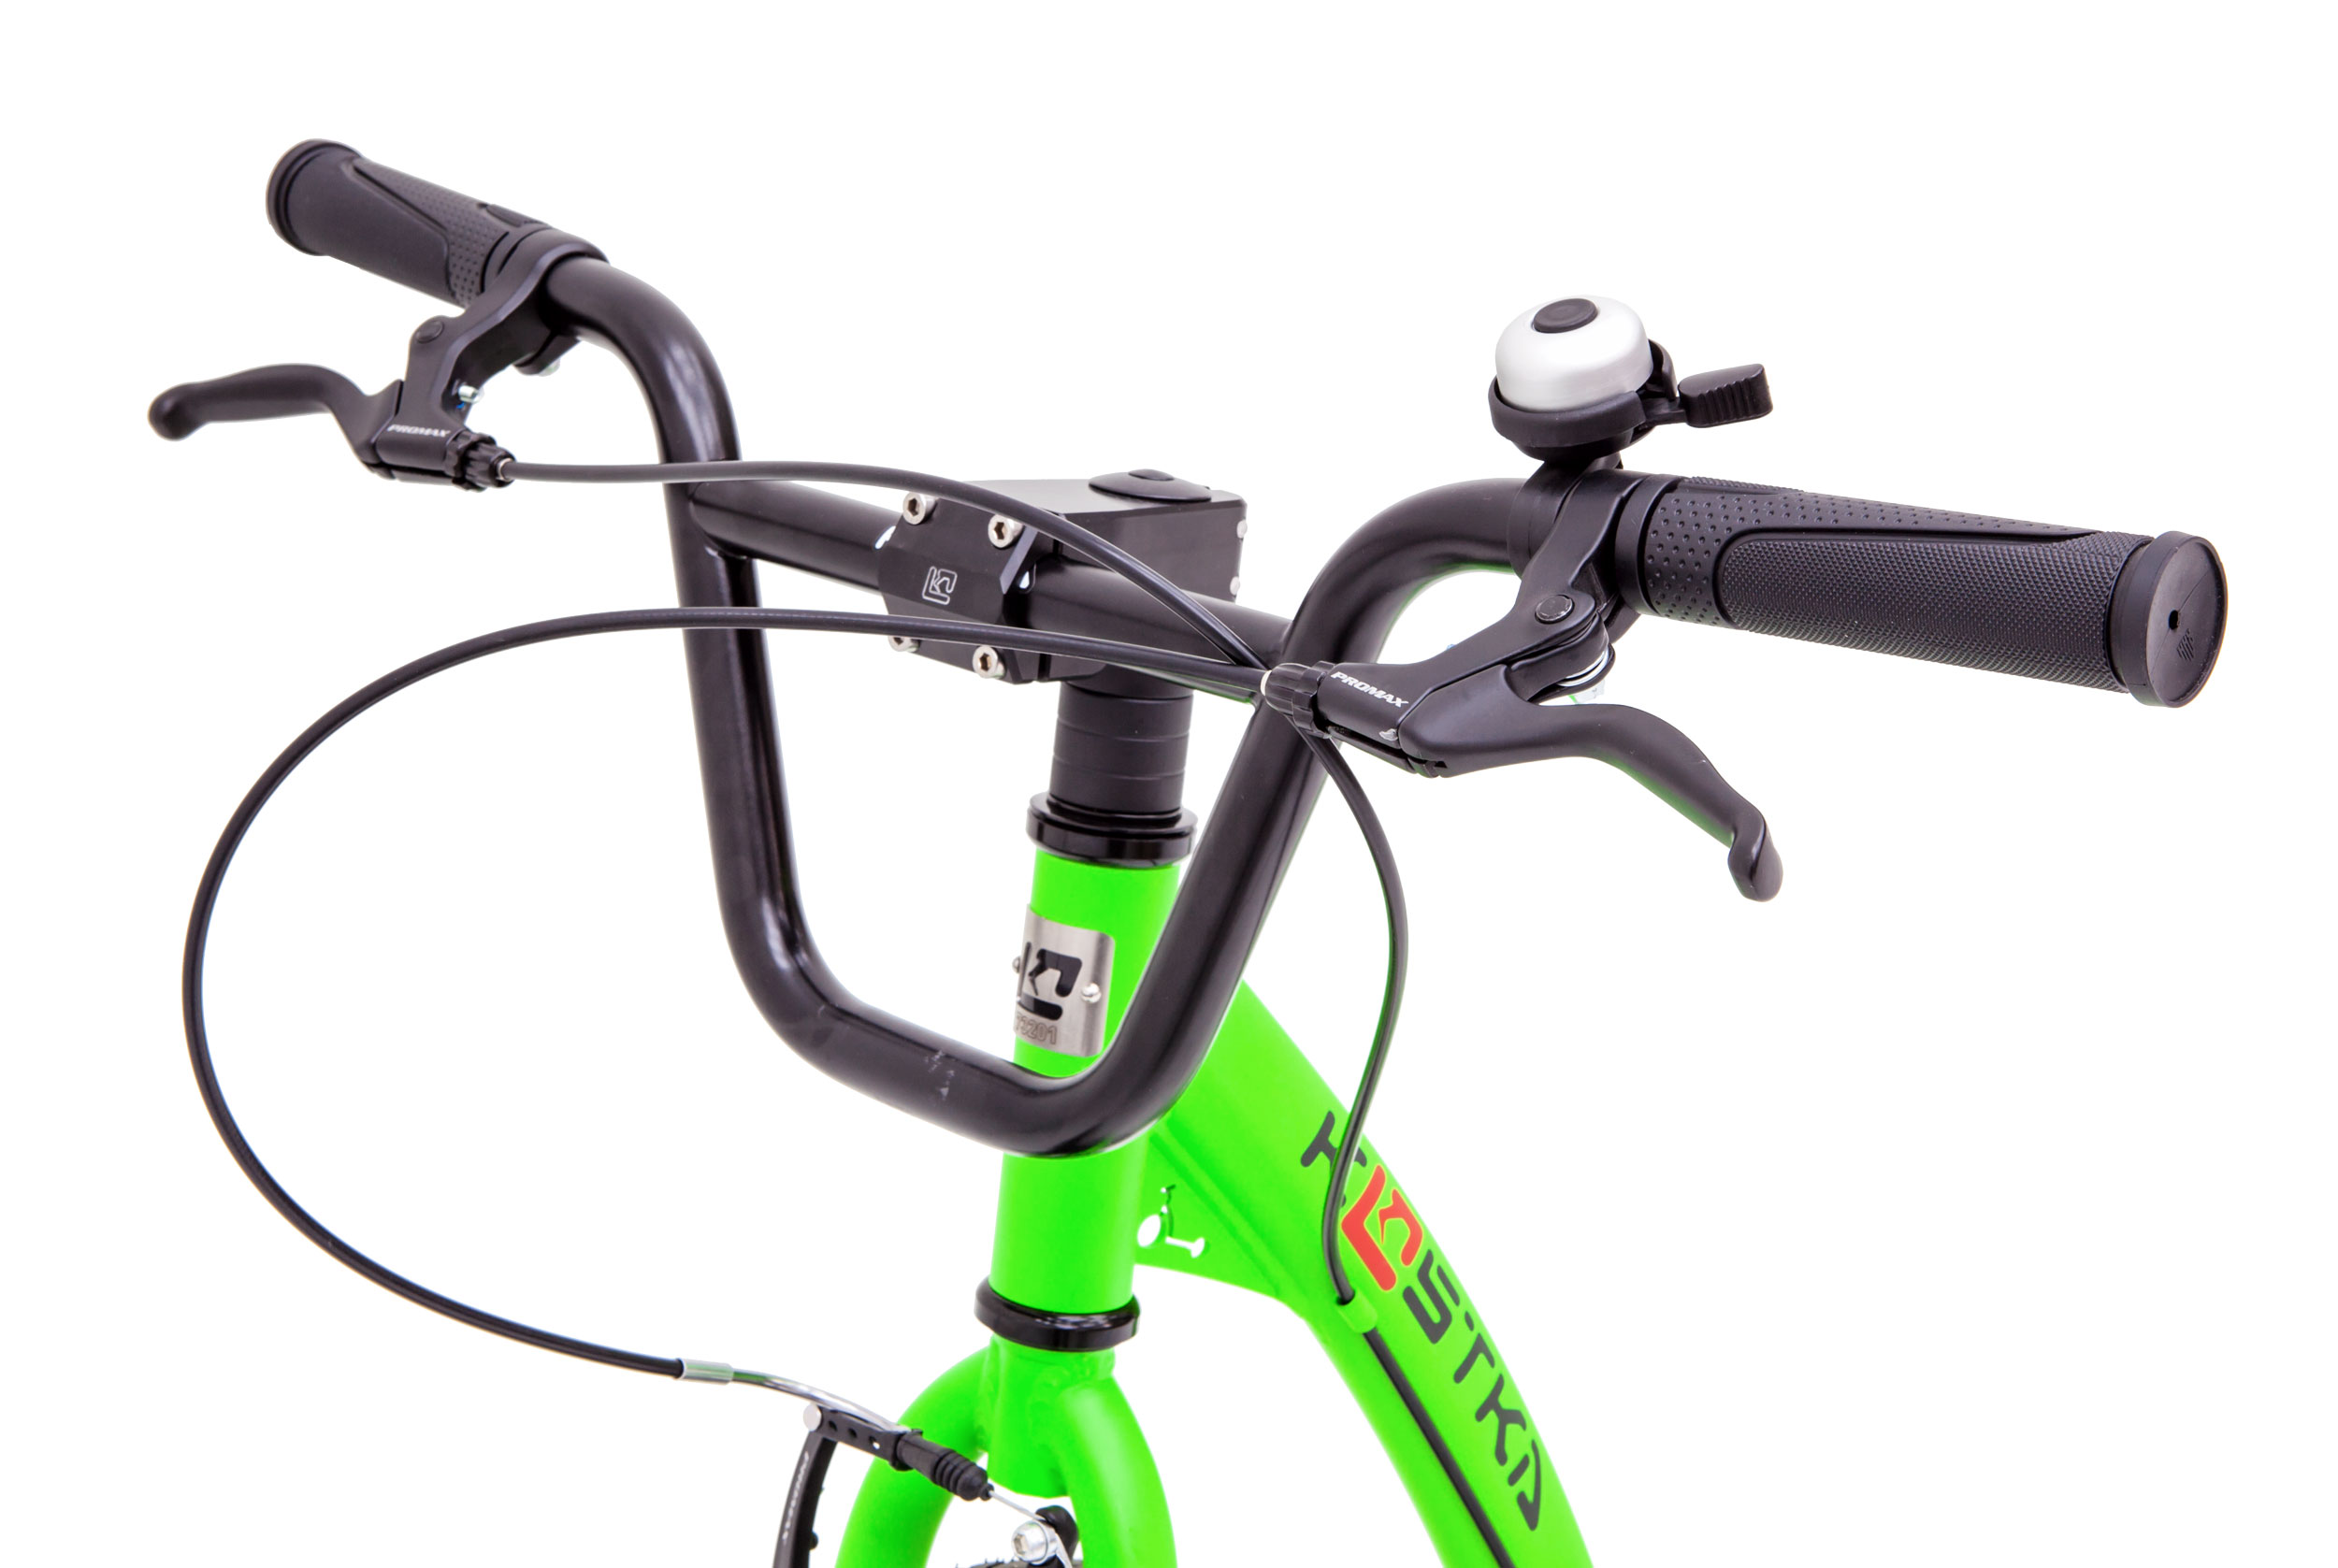 Lower position of handlebars